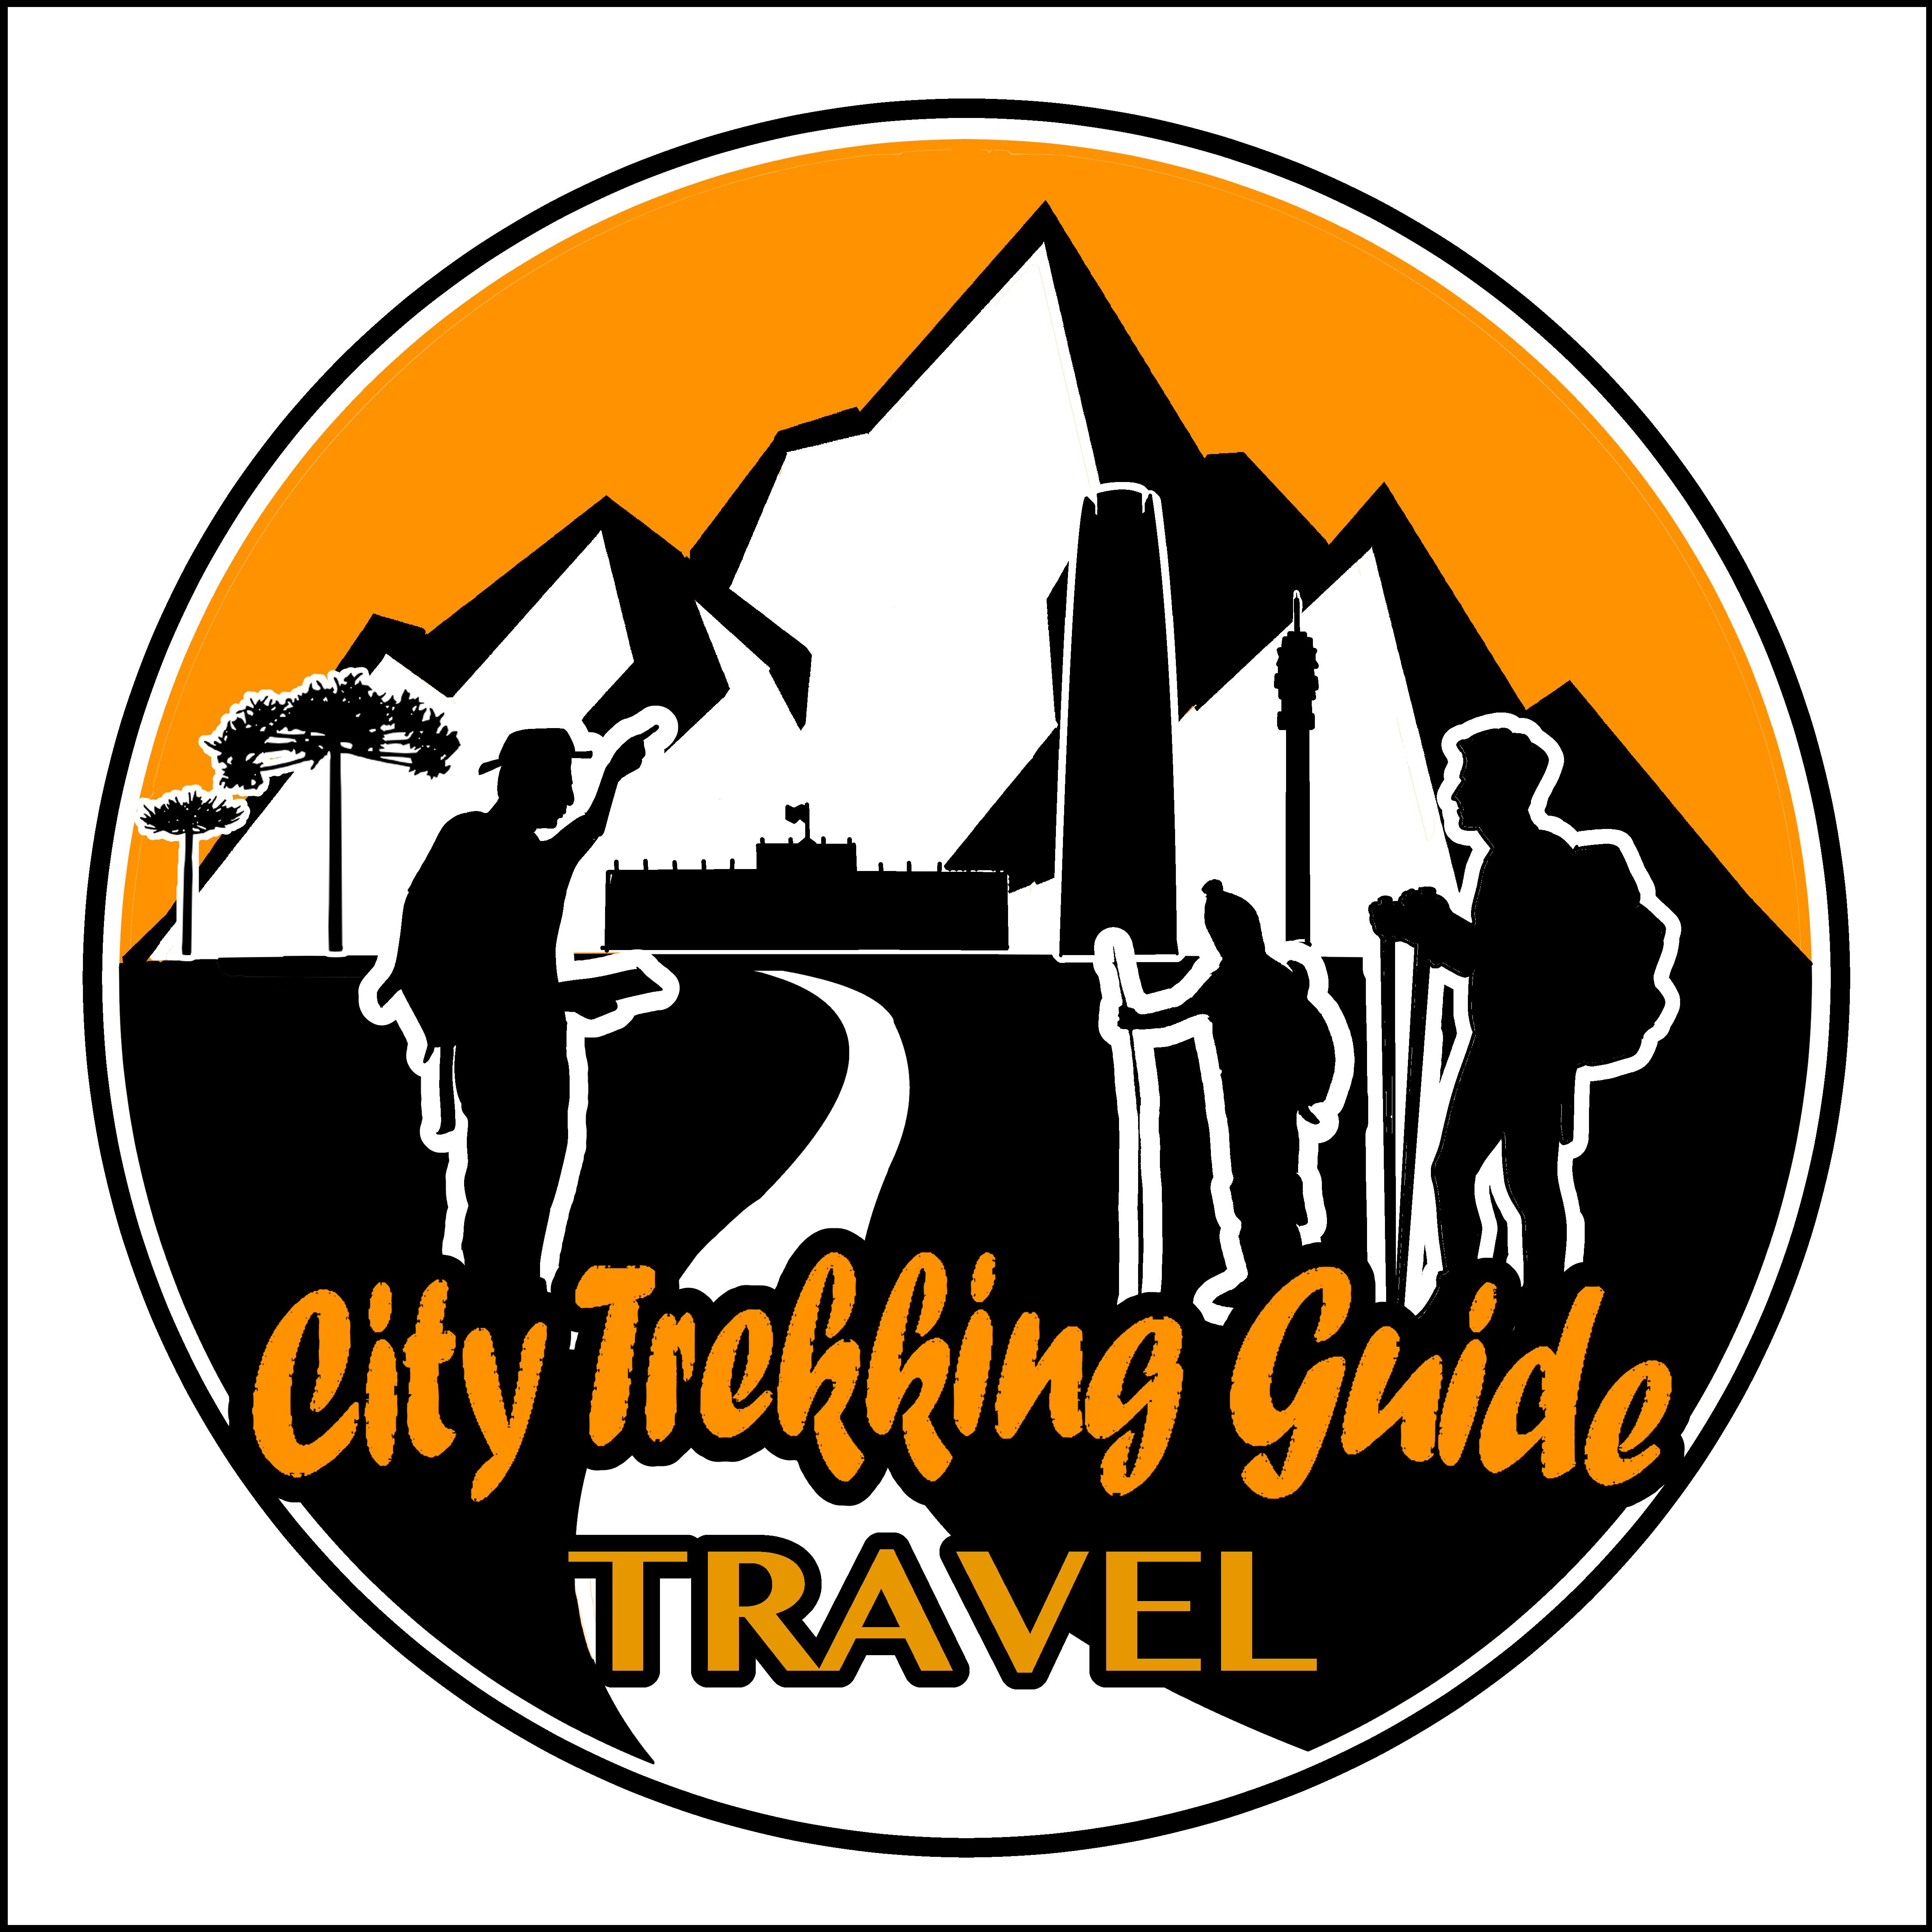 CityTrekkingGuide | TAILORMADE TOURS IN CHILE